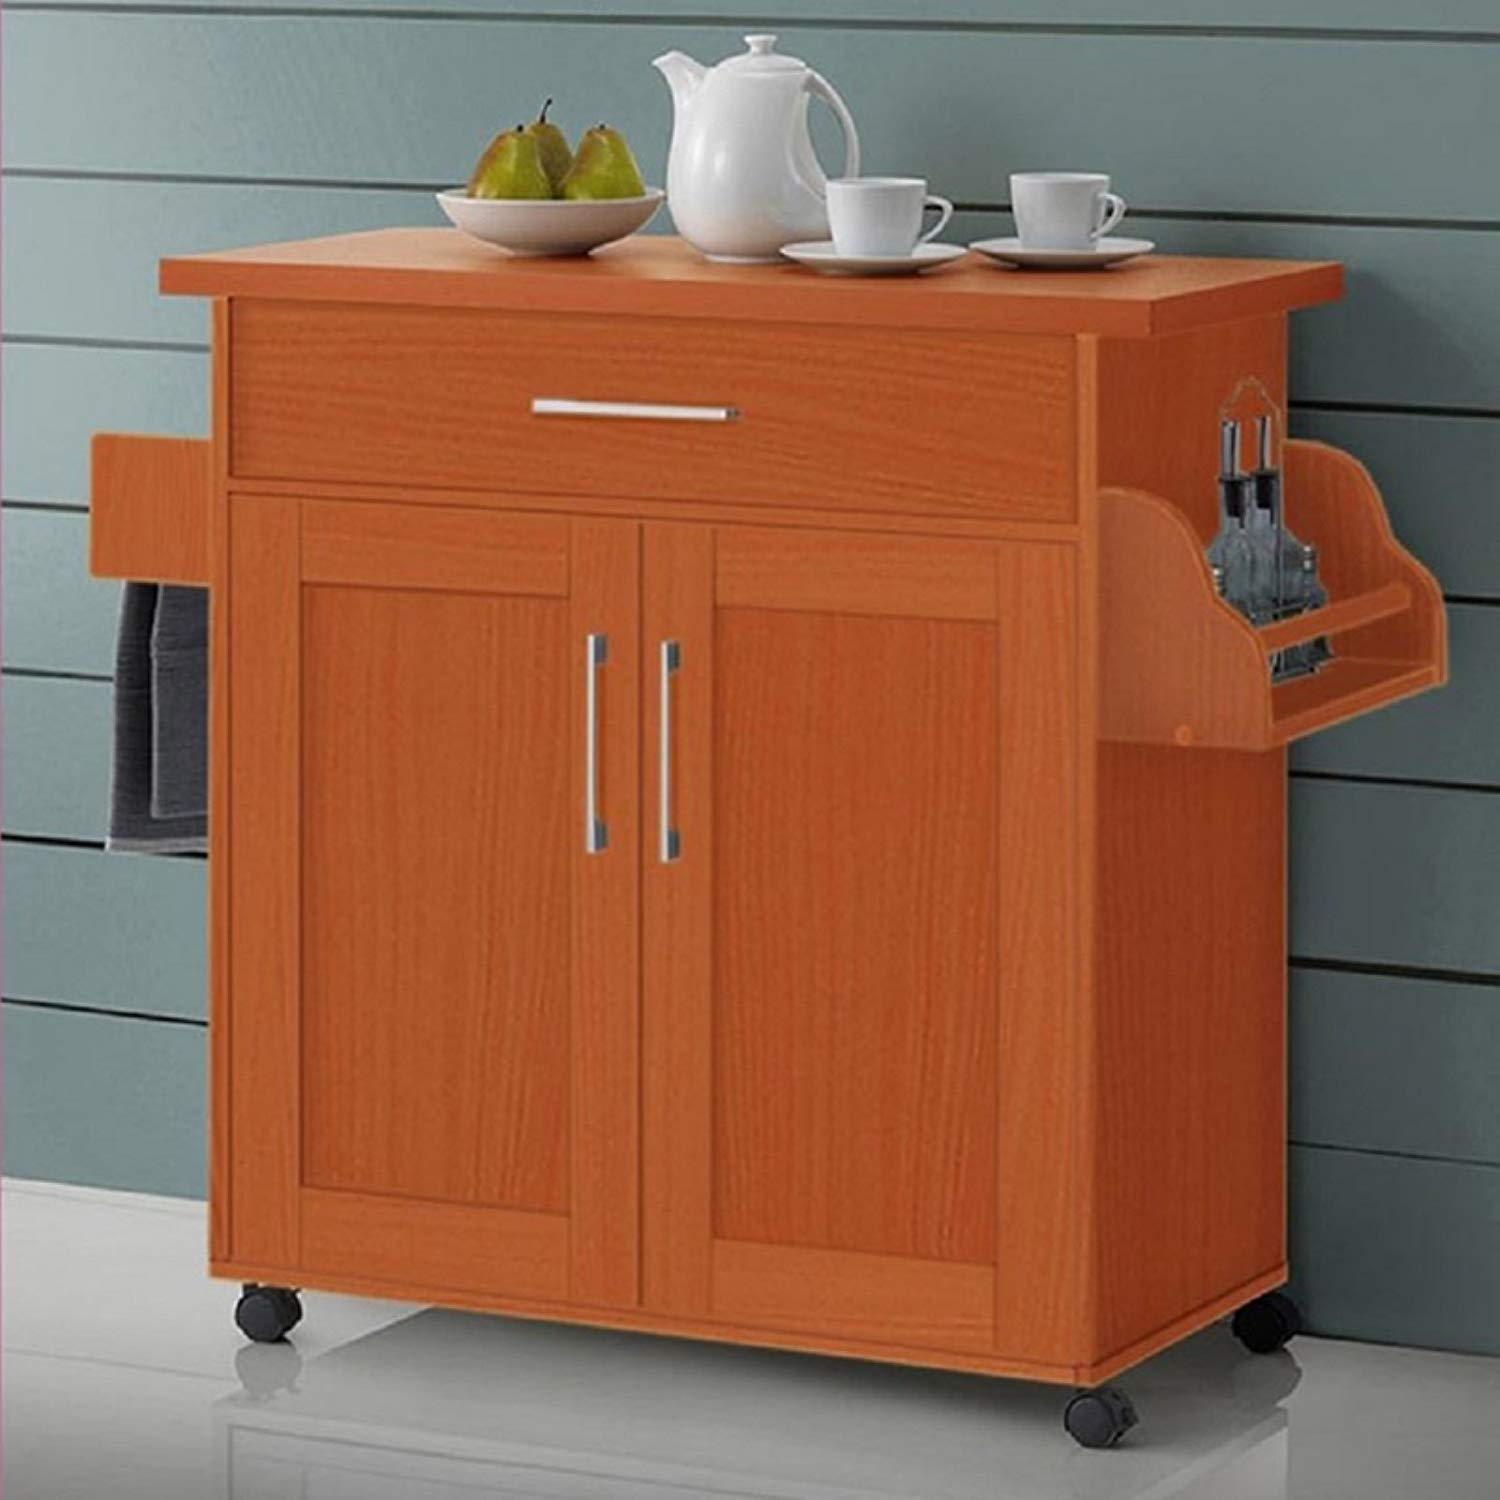 Kitchen Island with Towel Rack, Convenient and Accessible Way to Display your Microwave, Toaster and Other Small Appliances, Drawer to Store Kitchen Utensils, Store Small Appliance, Pots and Pans